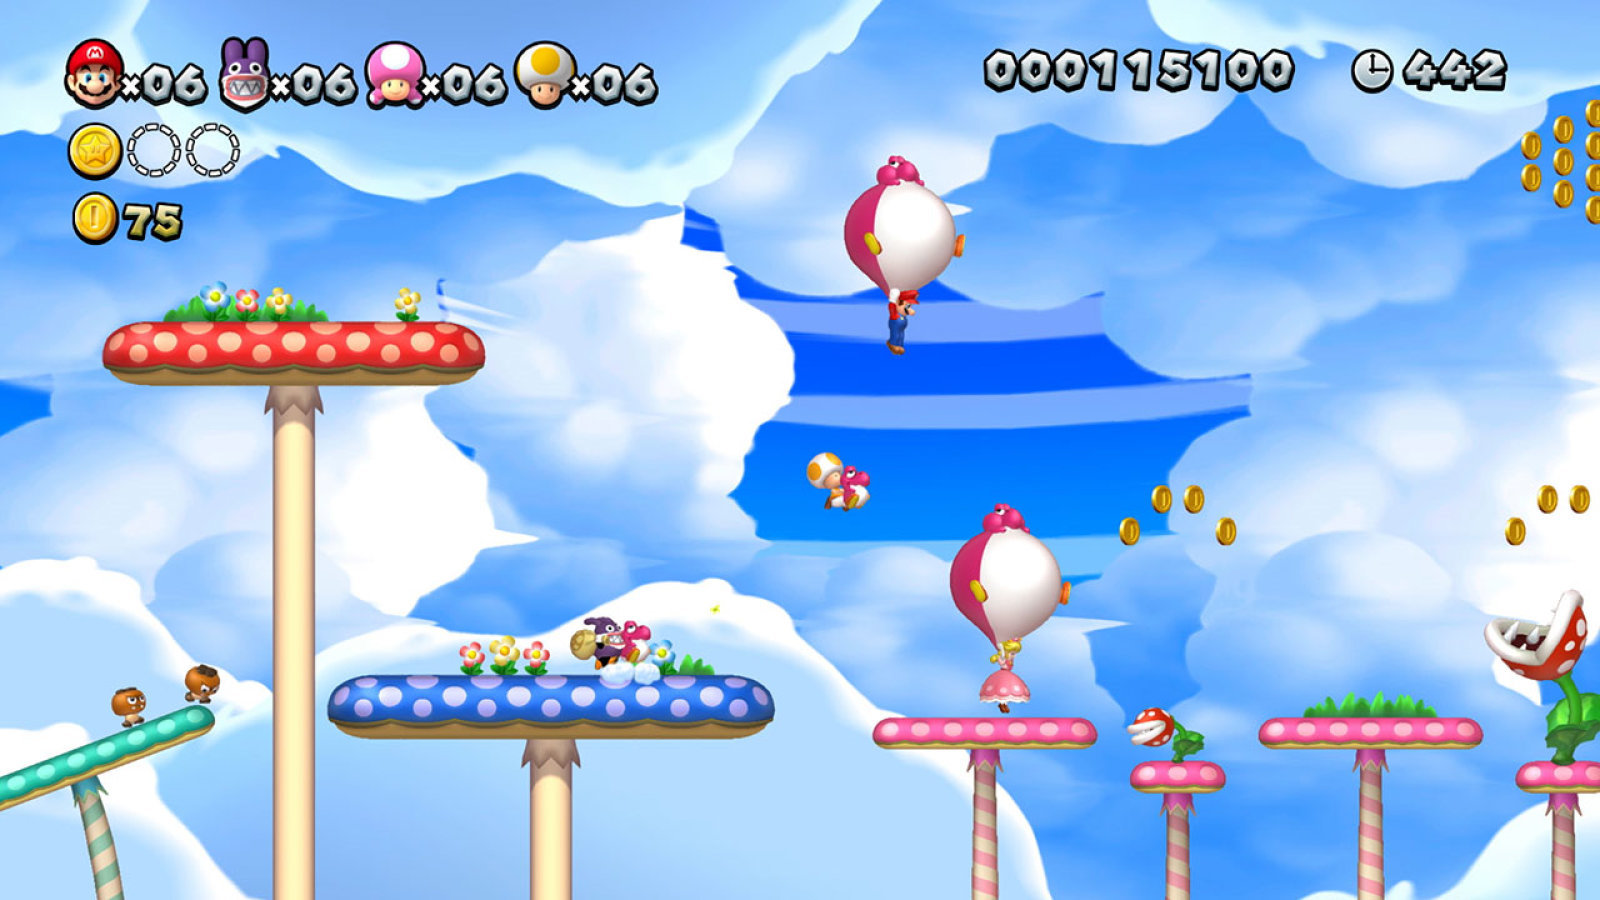 New Super Mario Bros U Deluxe hits the Nintendo eShop 1600x900